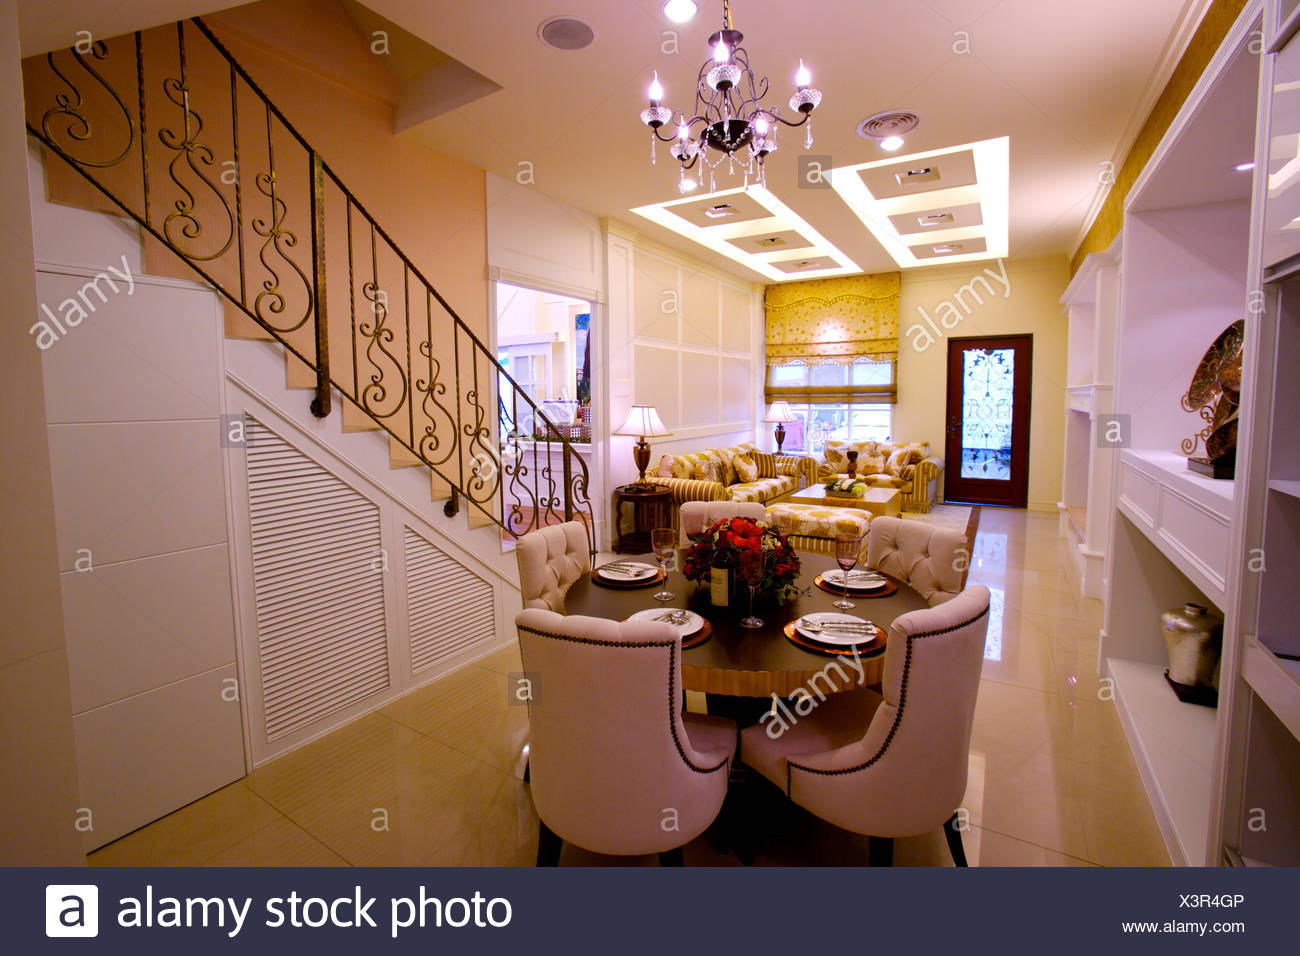 Living And Dining Room Stockfotos & Living And Dining Room Bilder ...